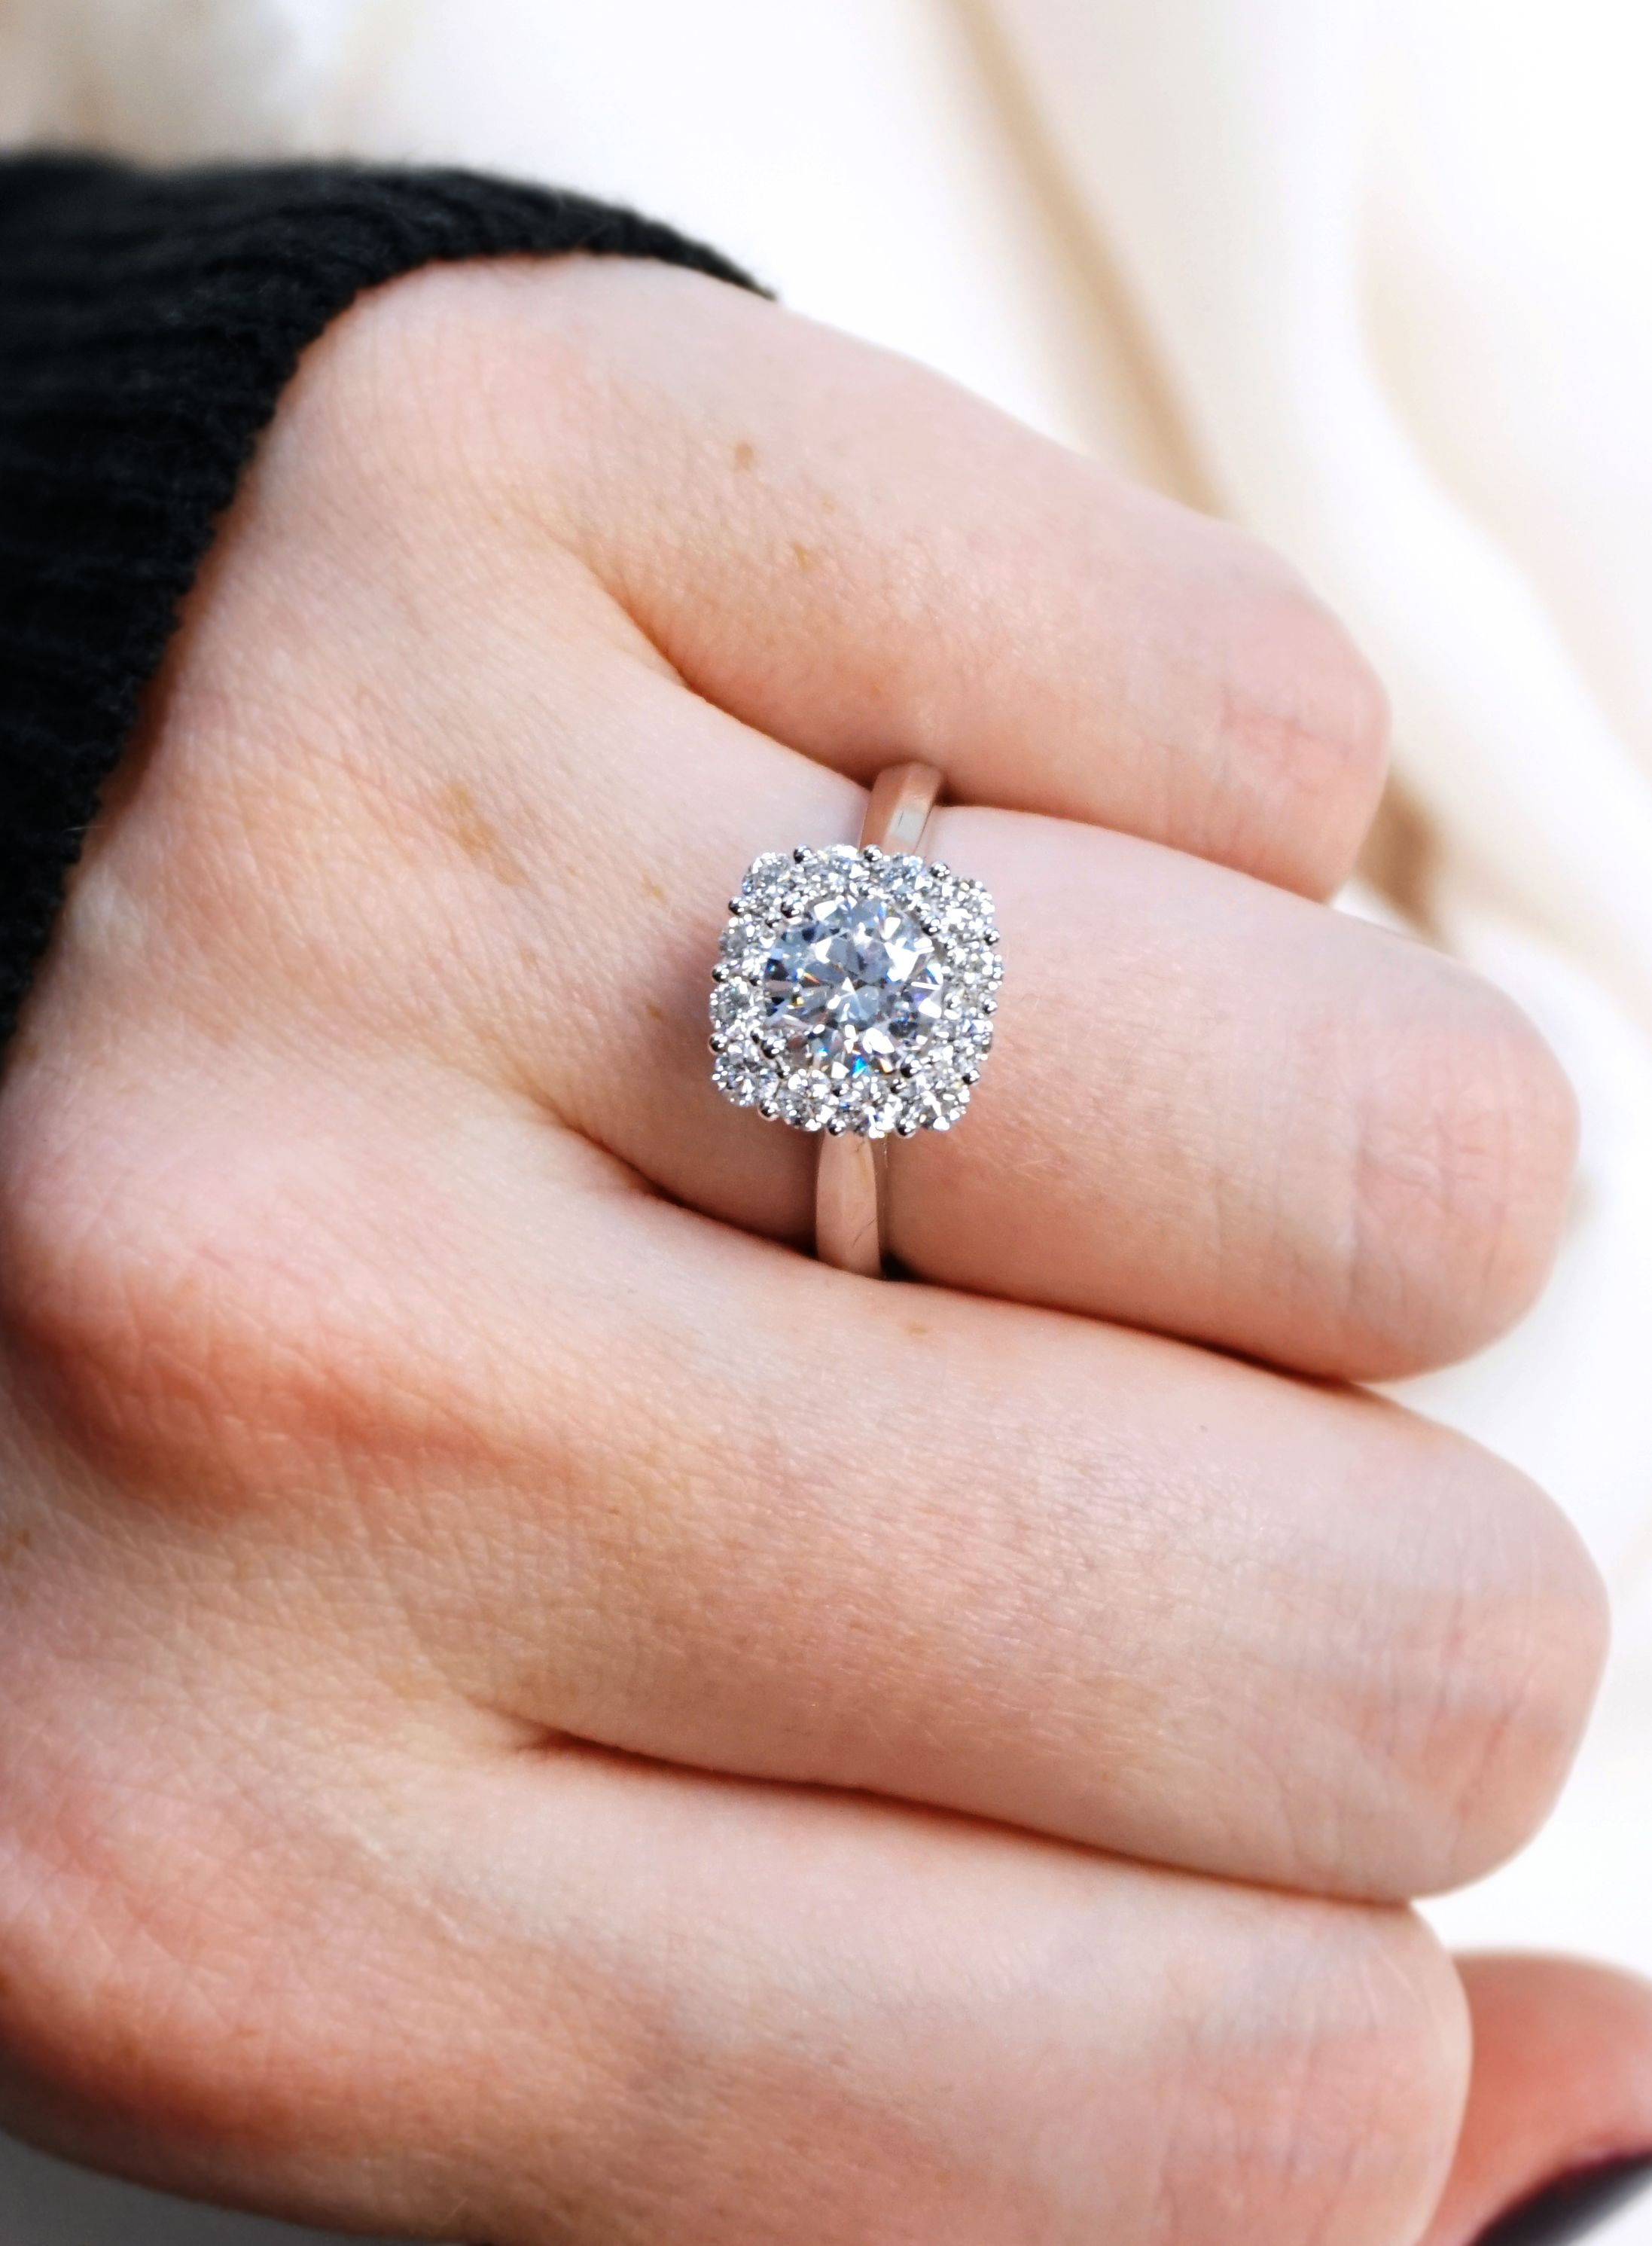 Halo Diamond Engagement Ring | Engagement ring styles, Halo ...